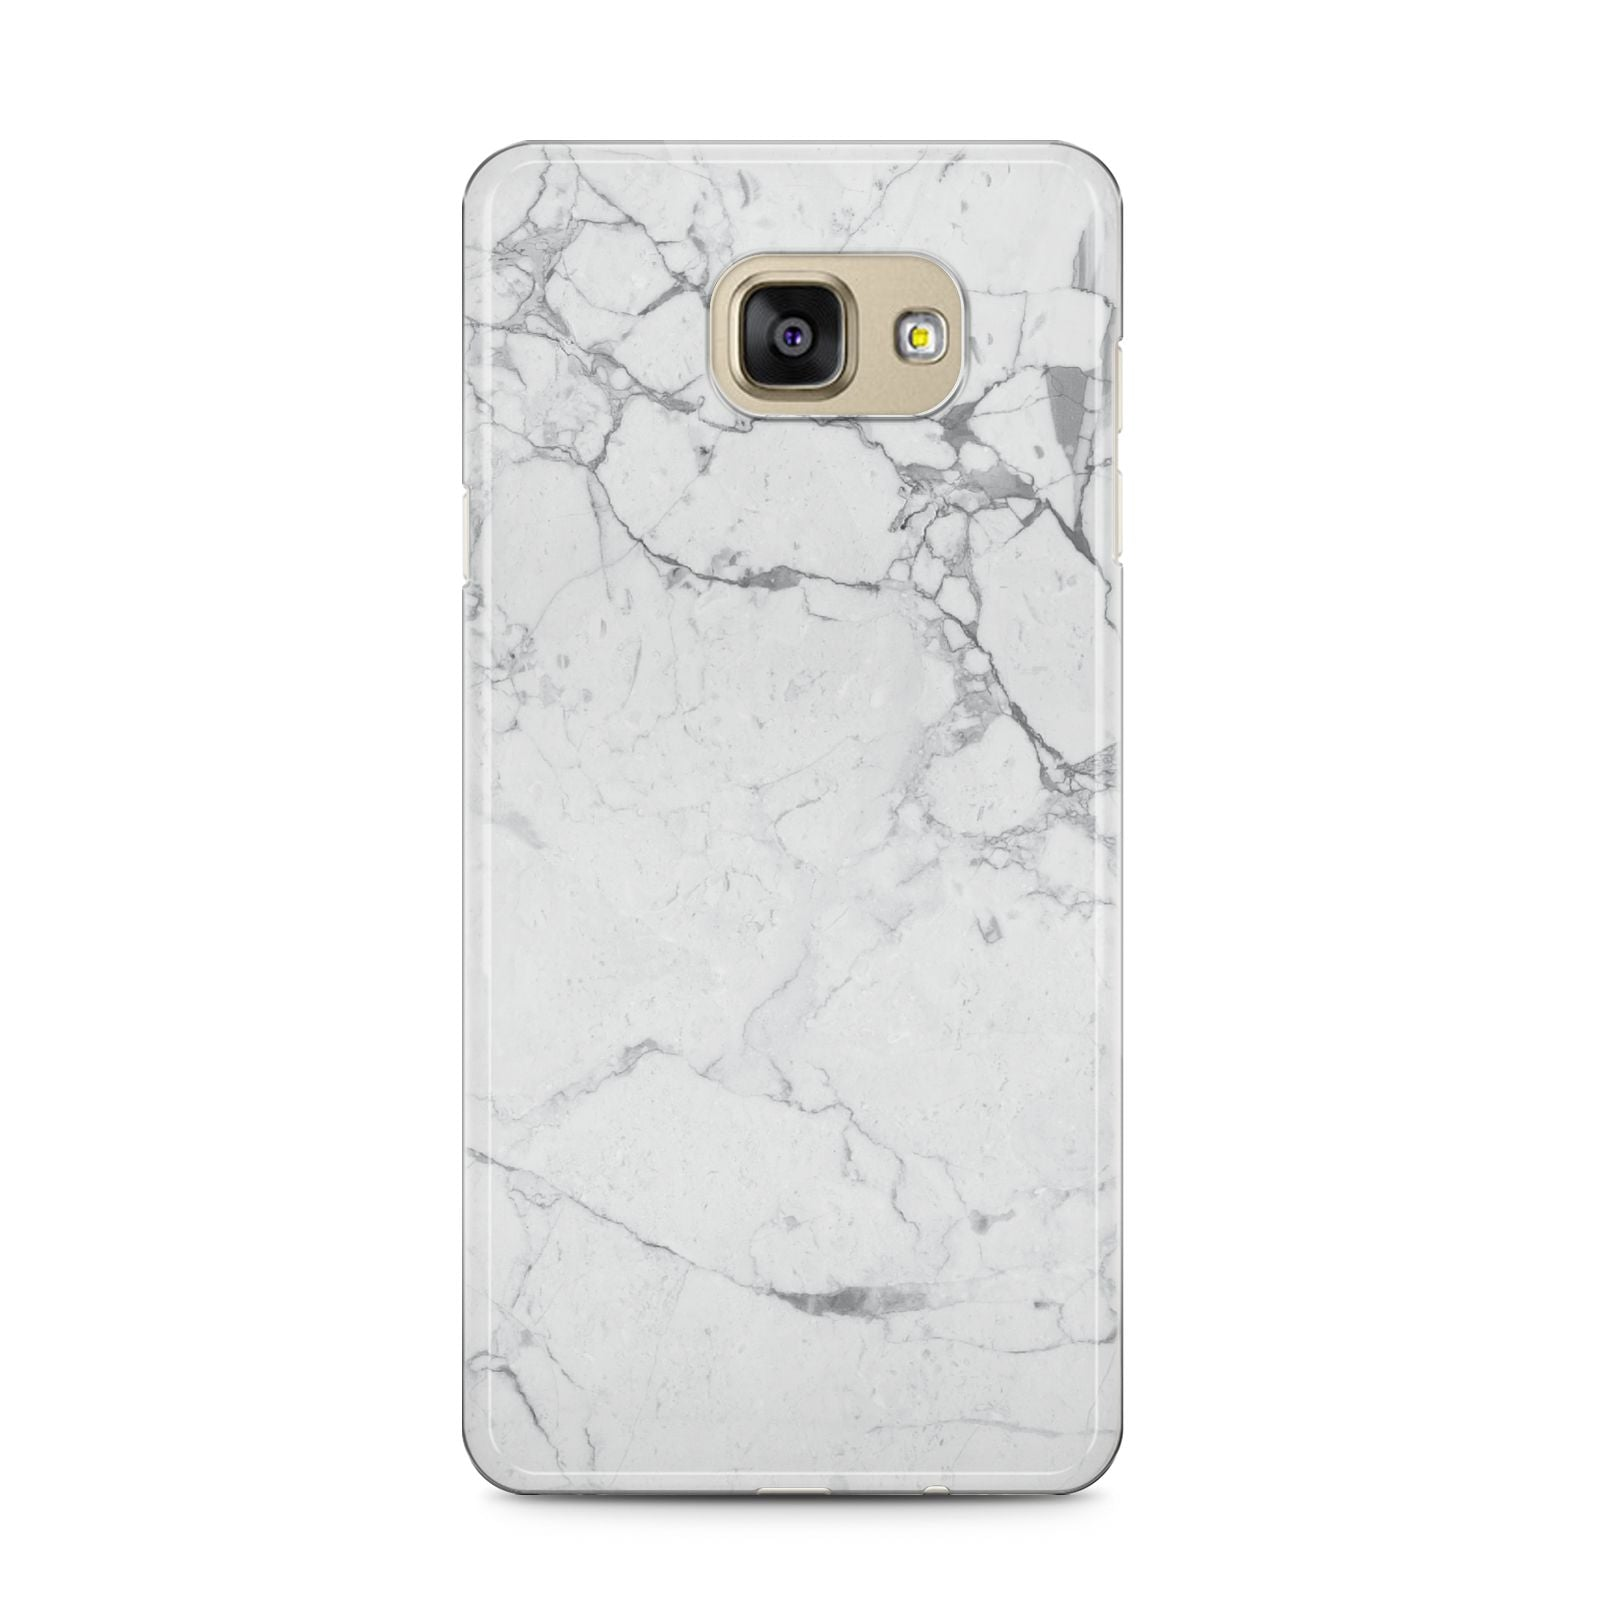 Faux Marble Effect Grey White Samsung Galaxy A5 2016 Case on gold phone